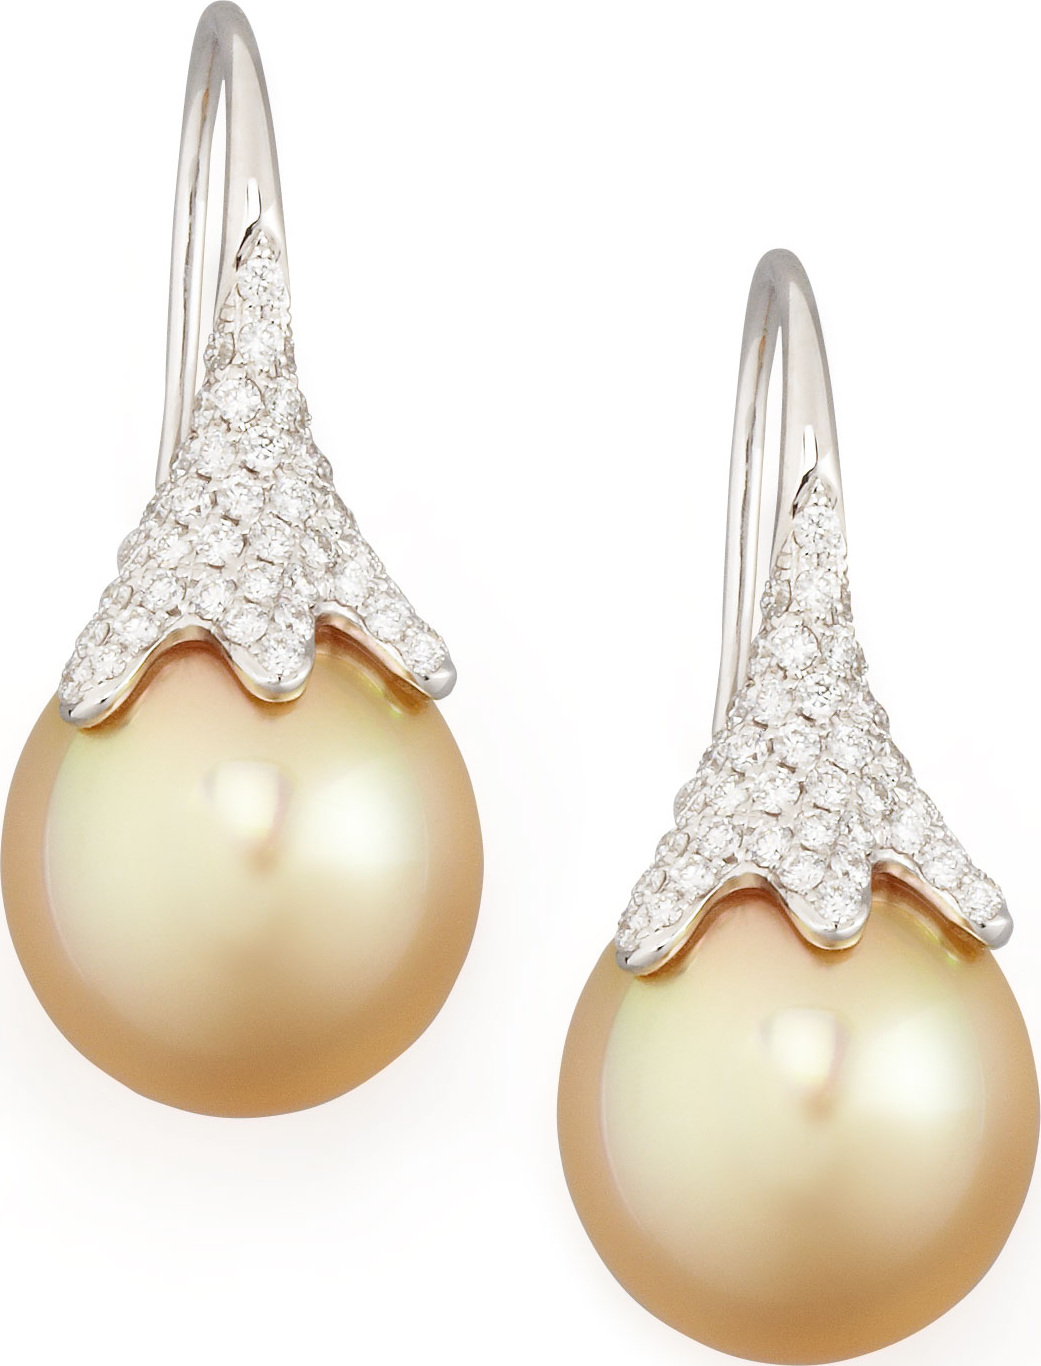 Eli Jewels Golden South Sea Pearl And Diamond Drop Earrings White Gold